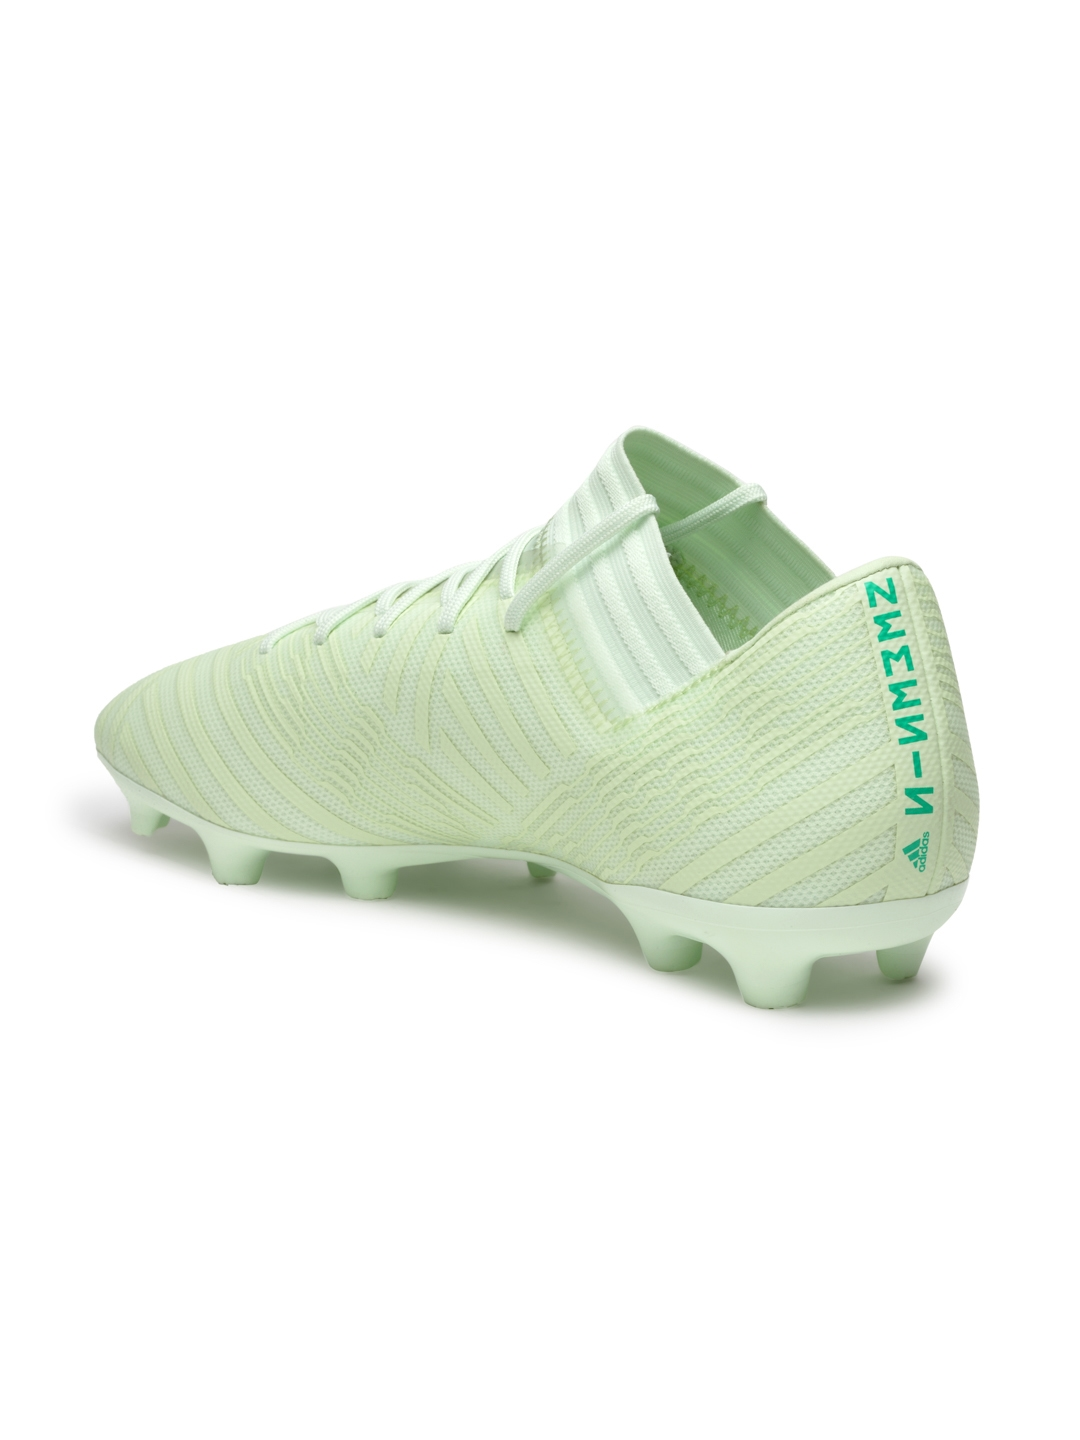 0e157c669dde Buy ADIDAS Men Mint Green NEMEZIZ 17.3 Firm Ground Football Shoes ...